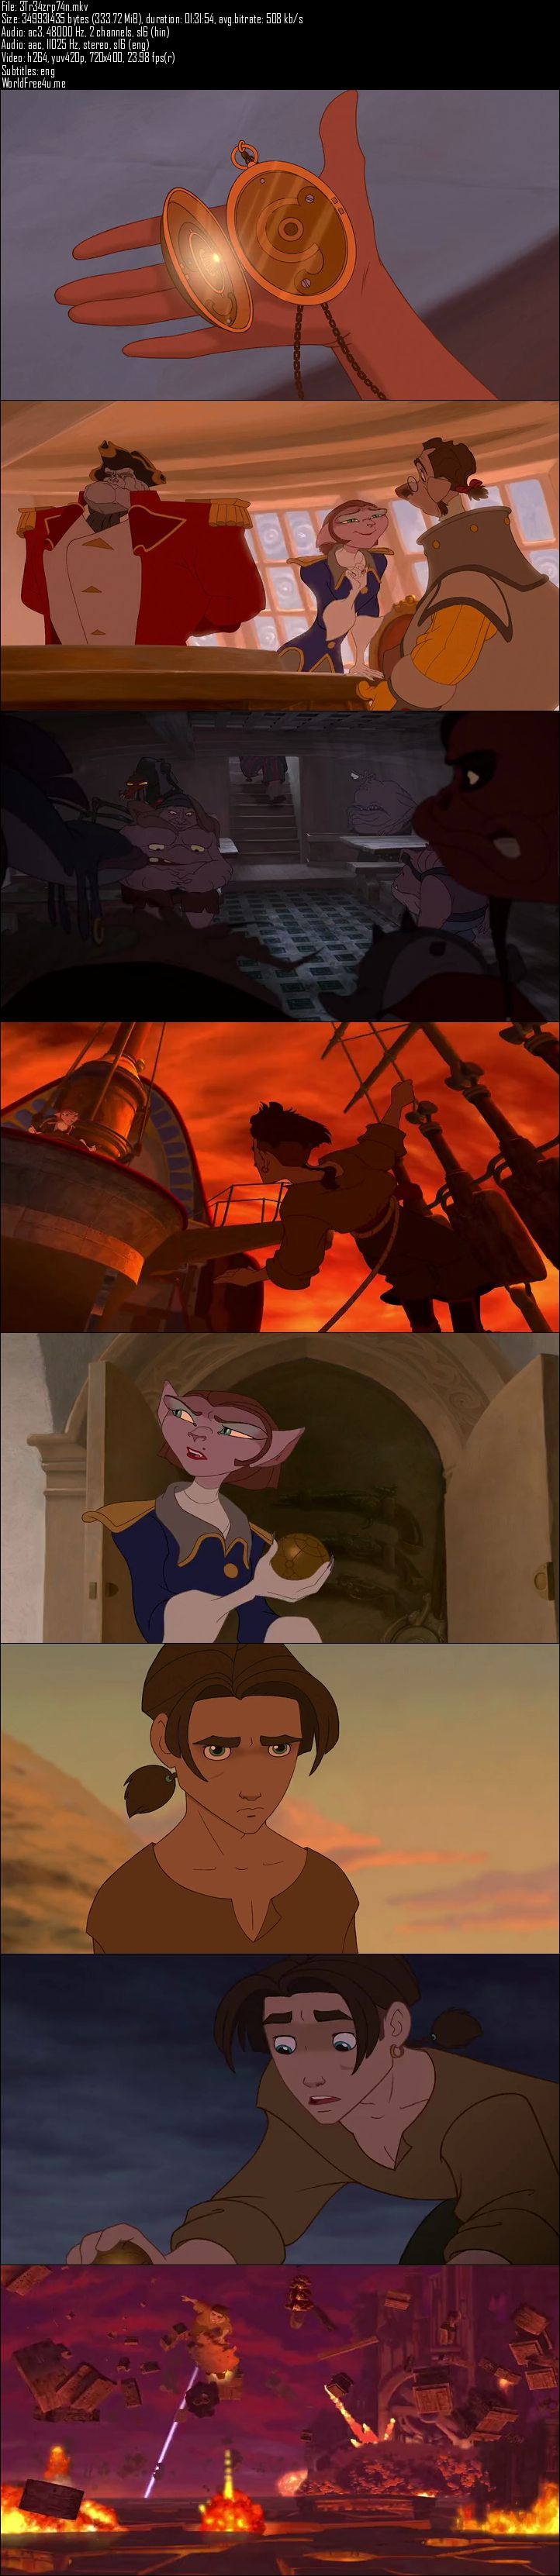 Screen Shot Of Treasure Planet 2002 Full Movie Download 300MB In Hindi 480P ESubs Full small Size PC Movie